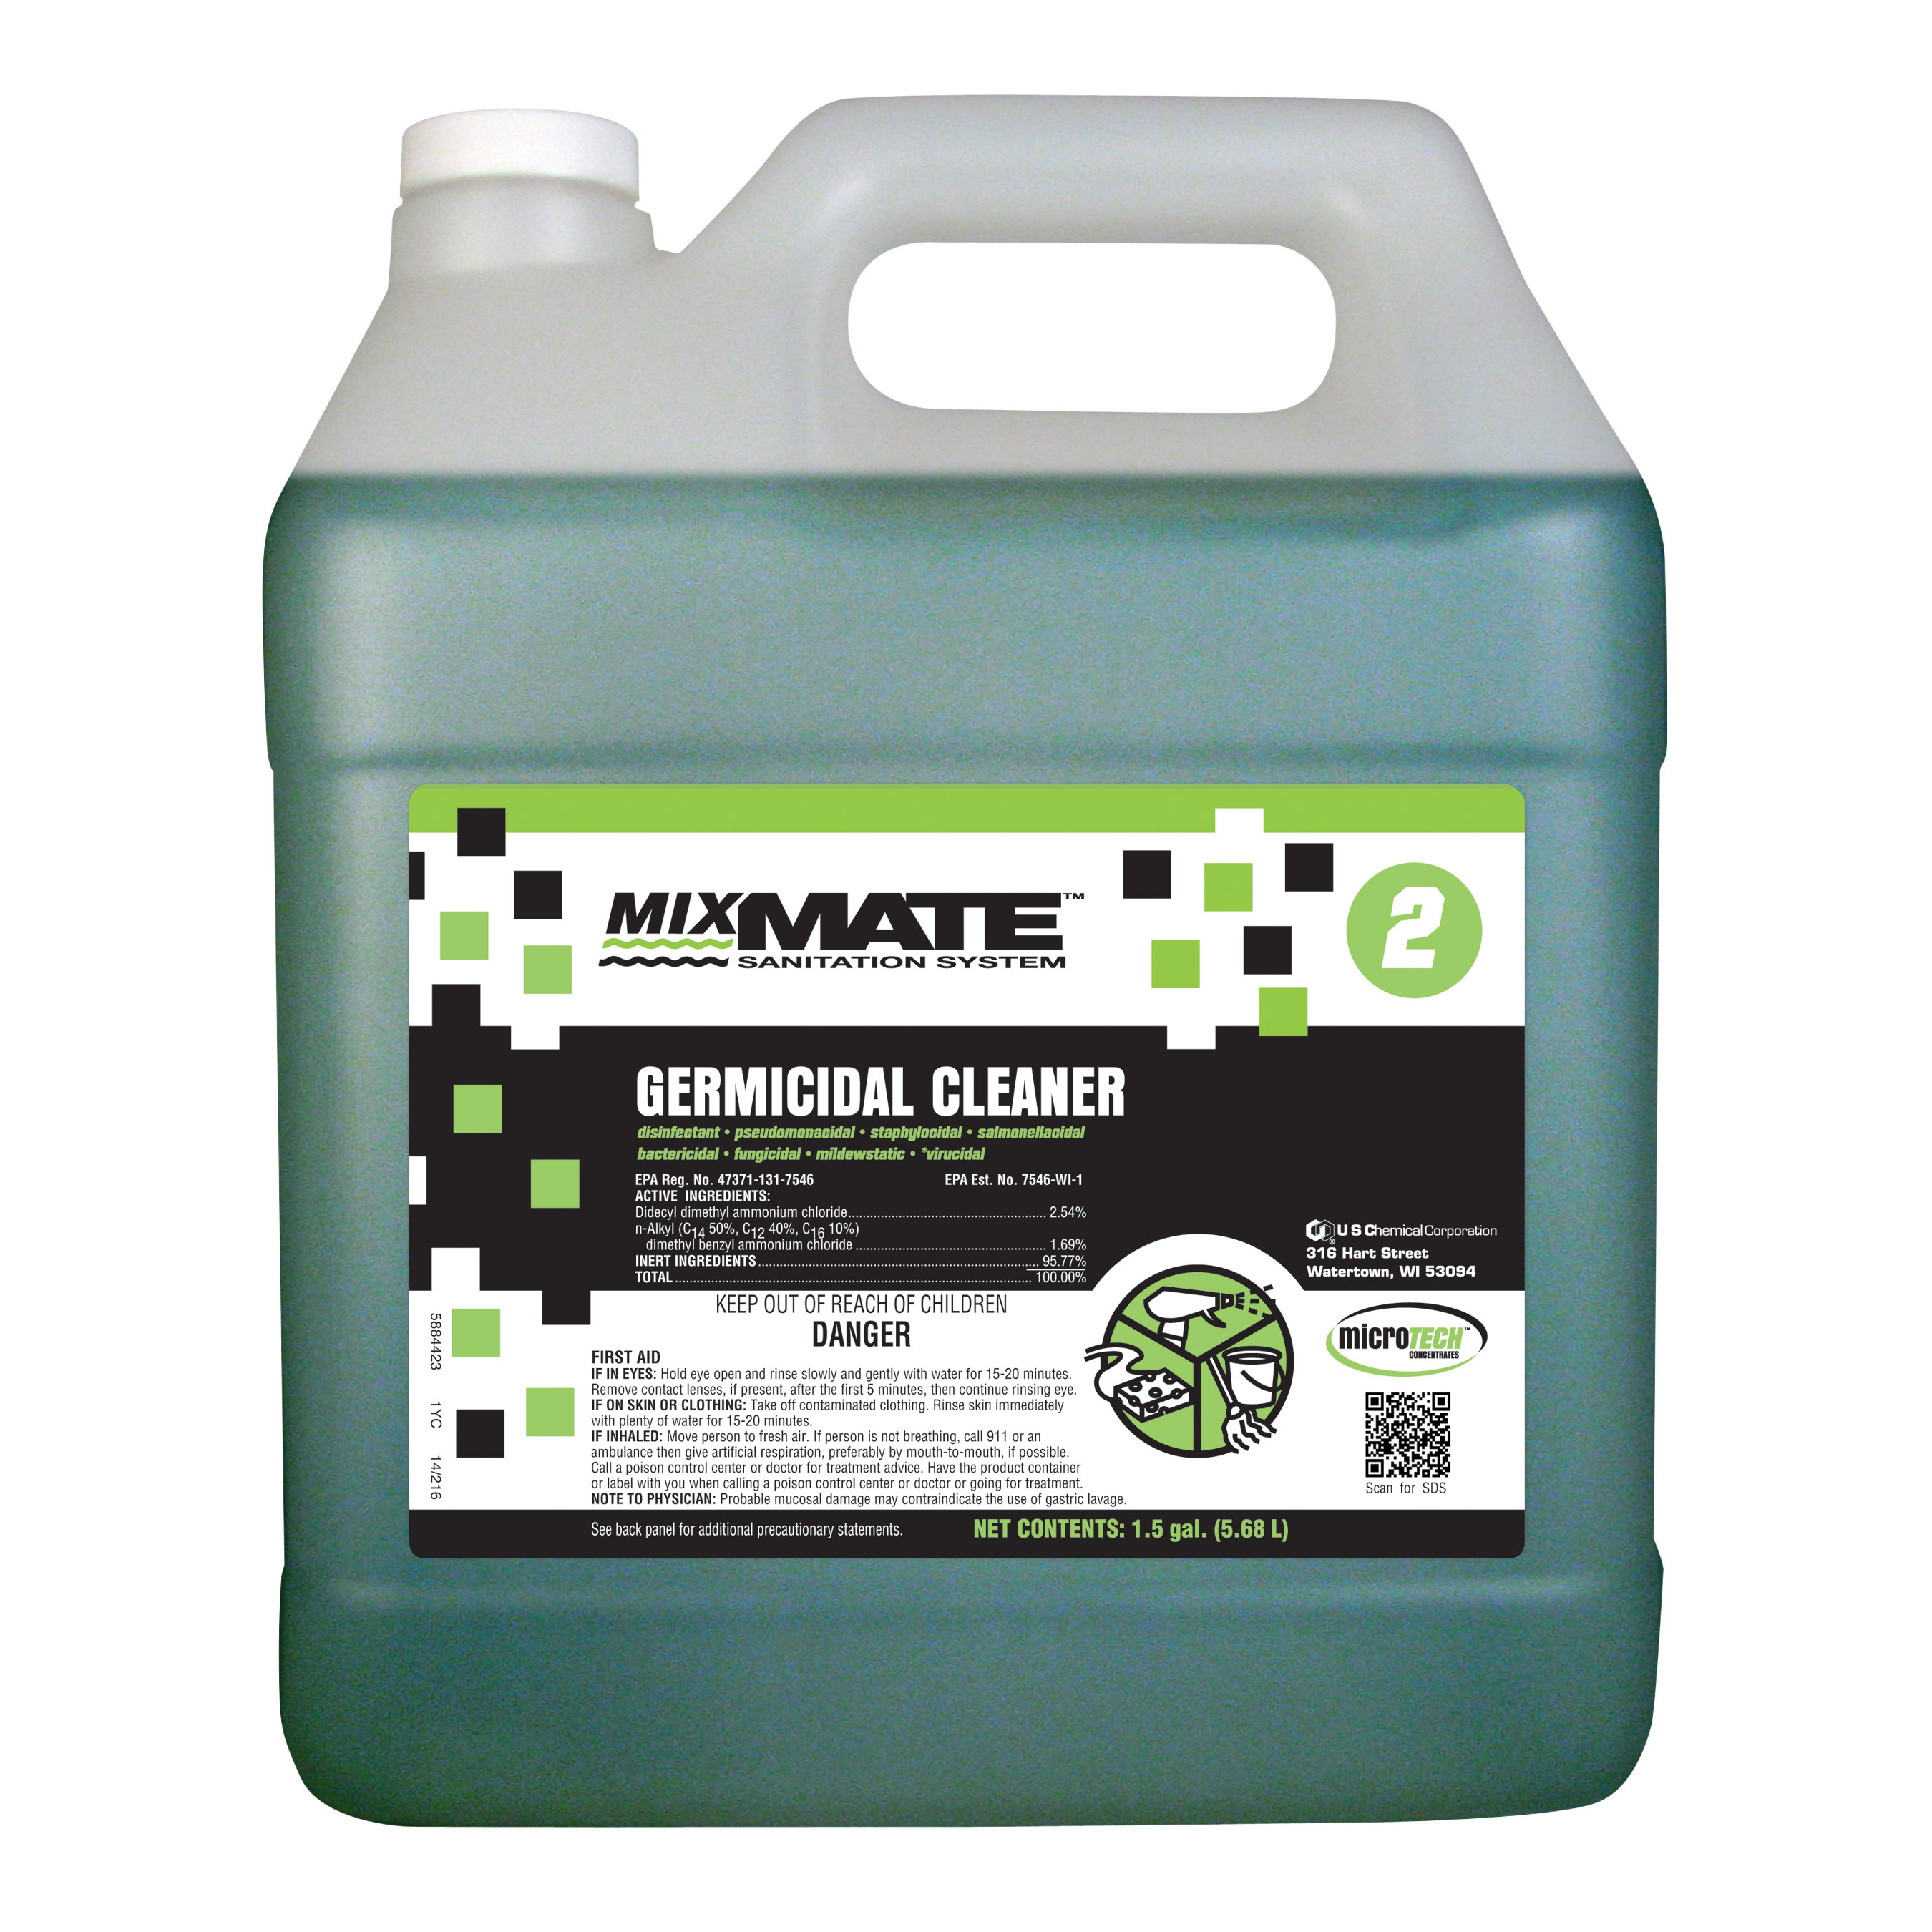 5341365 2_MIXMATE__MICROTECH_GERMICIDAL_CLEANER